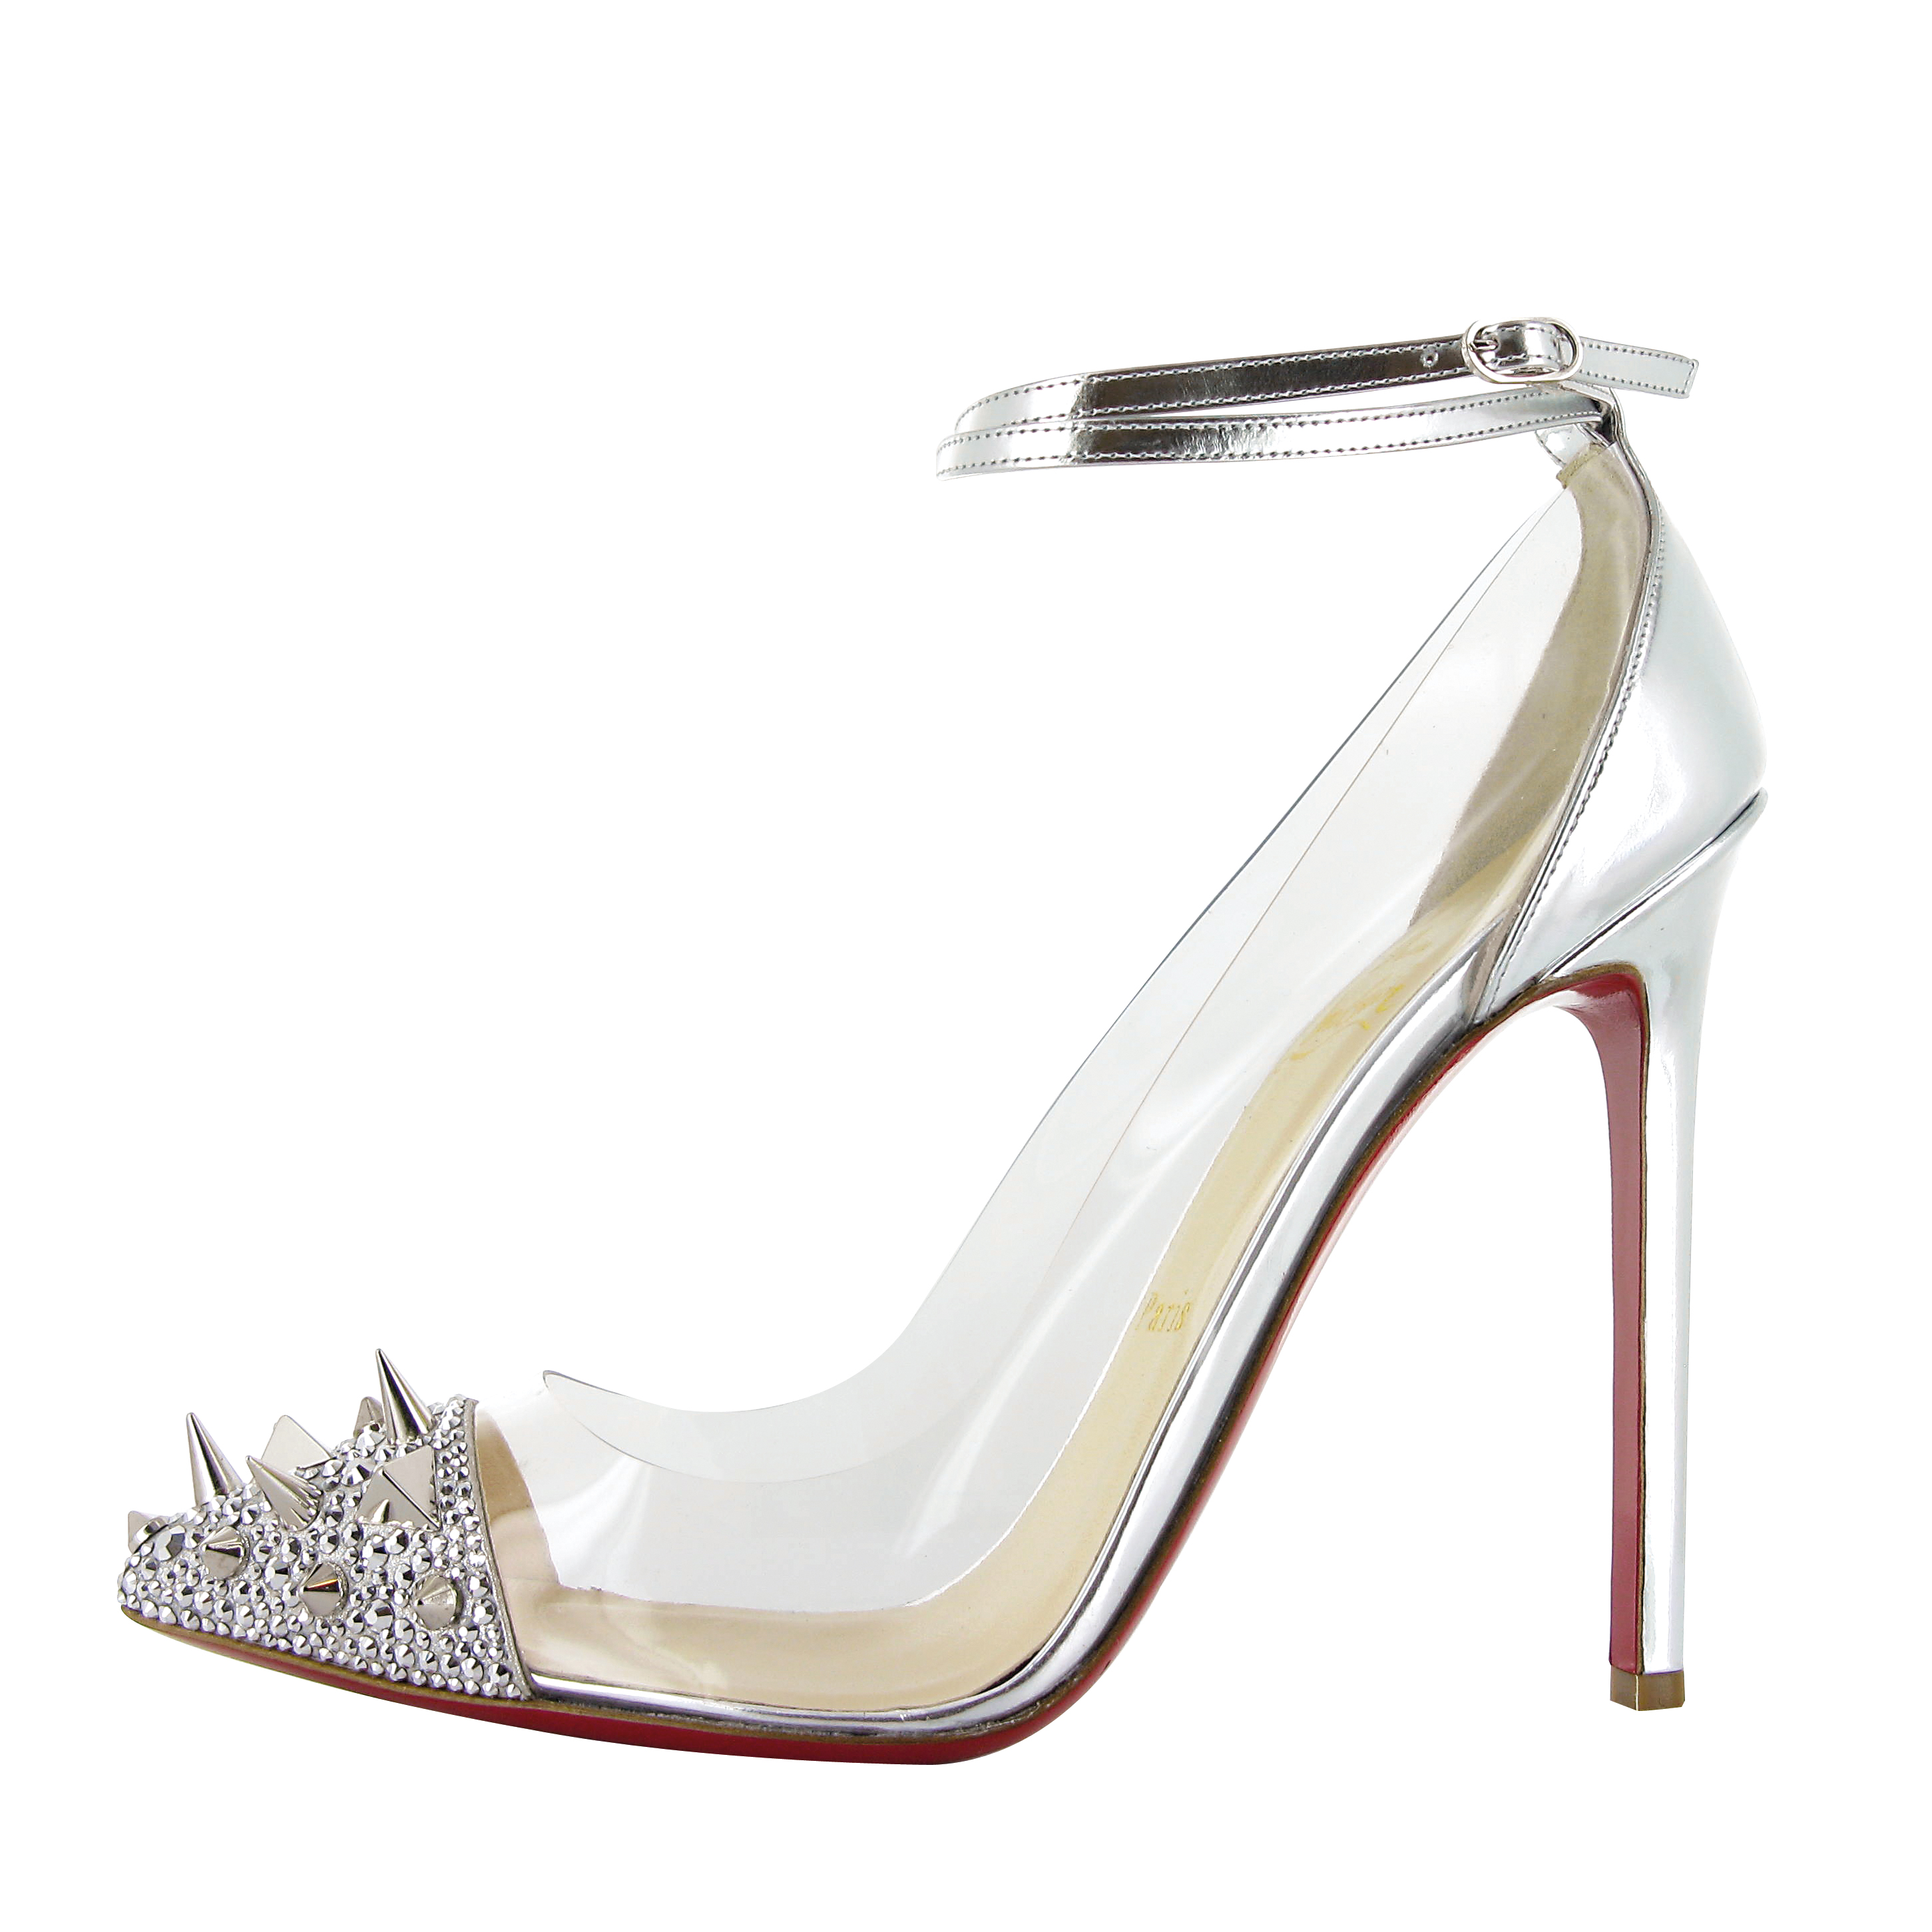 c7adb5c67036 Confessions of a Shoe Addict  Bridal Shoes from Christian Louboutin ...